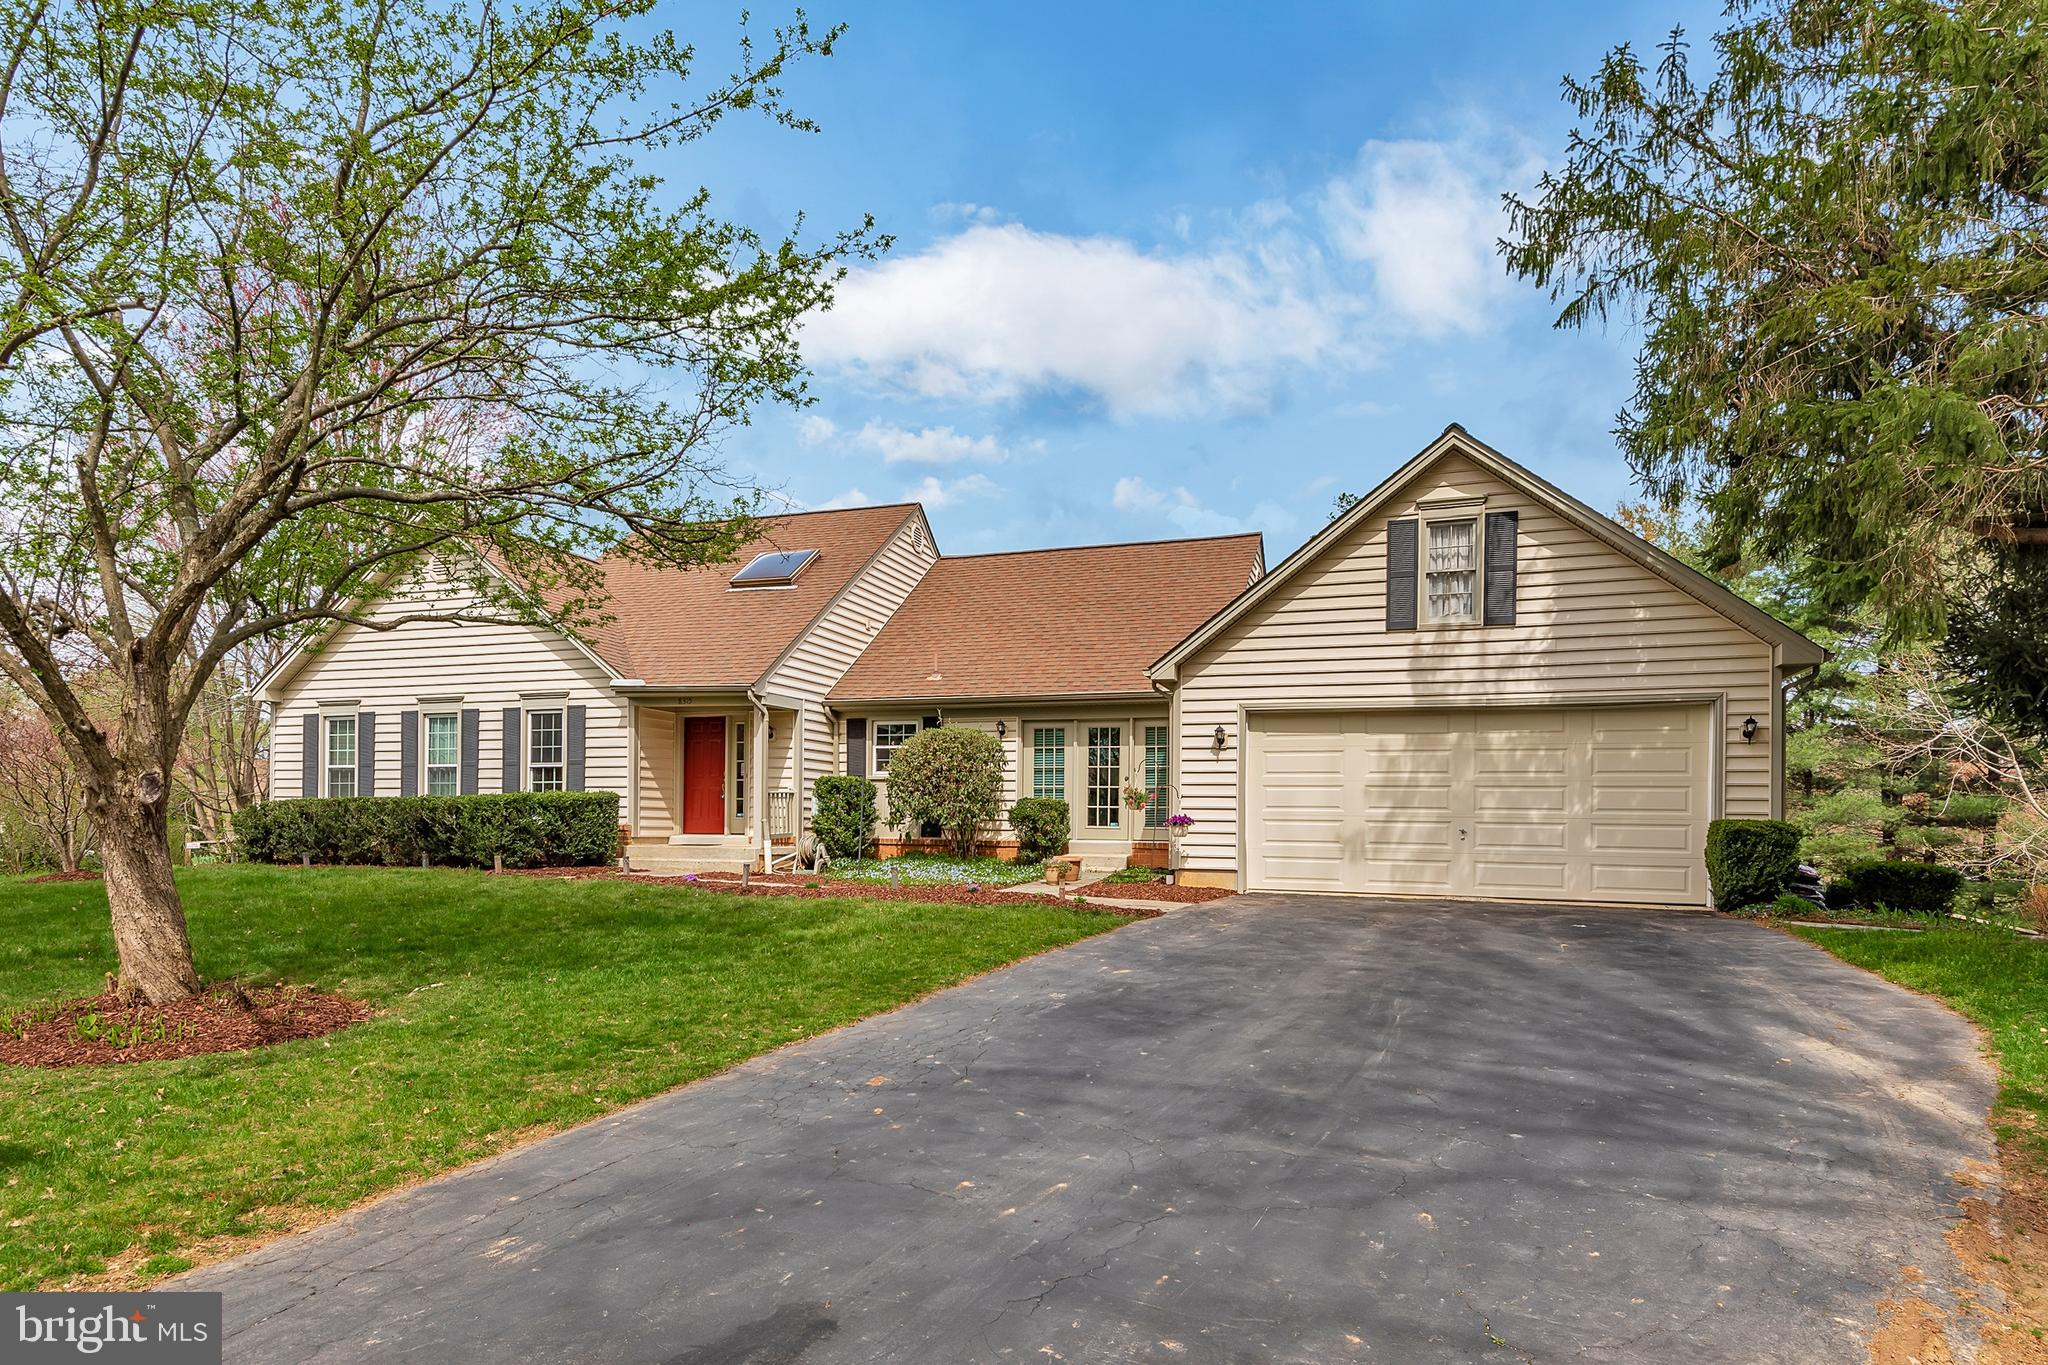 8315 FRONTWELL CIRCLE, MONTGOMERY VILLAGE, MD 20886